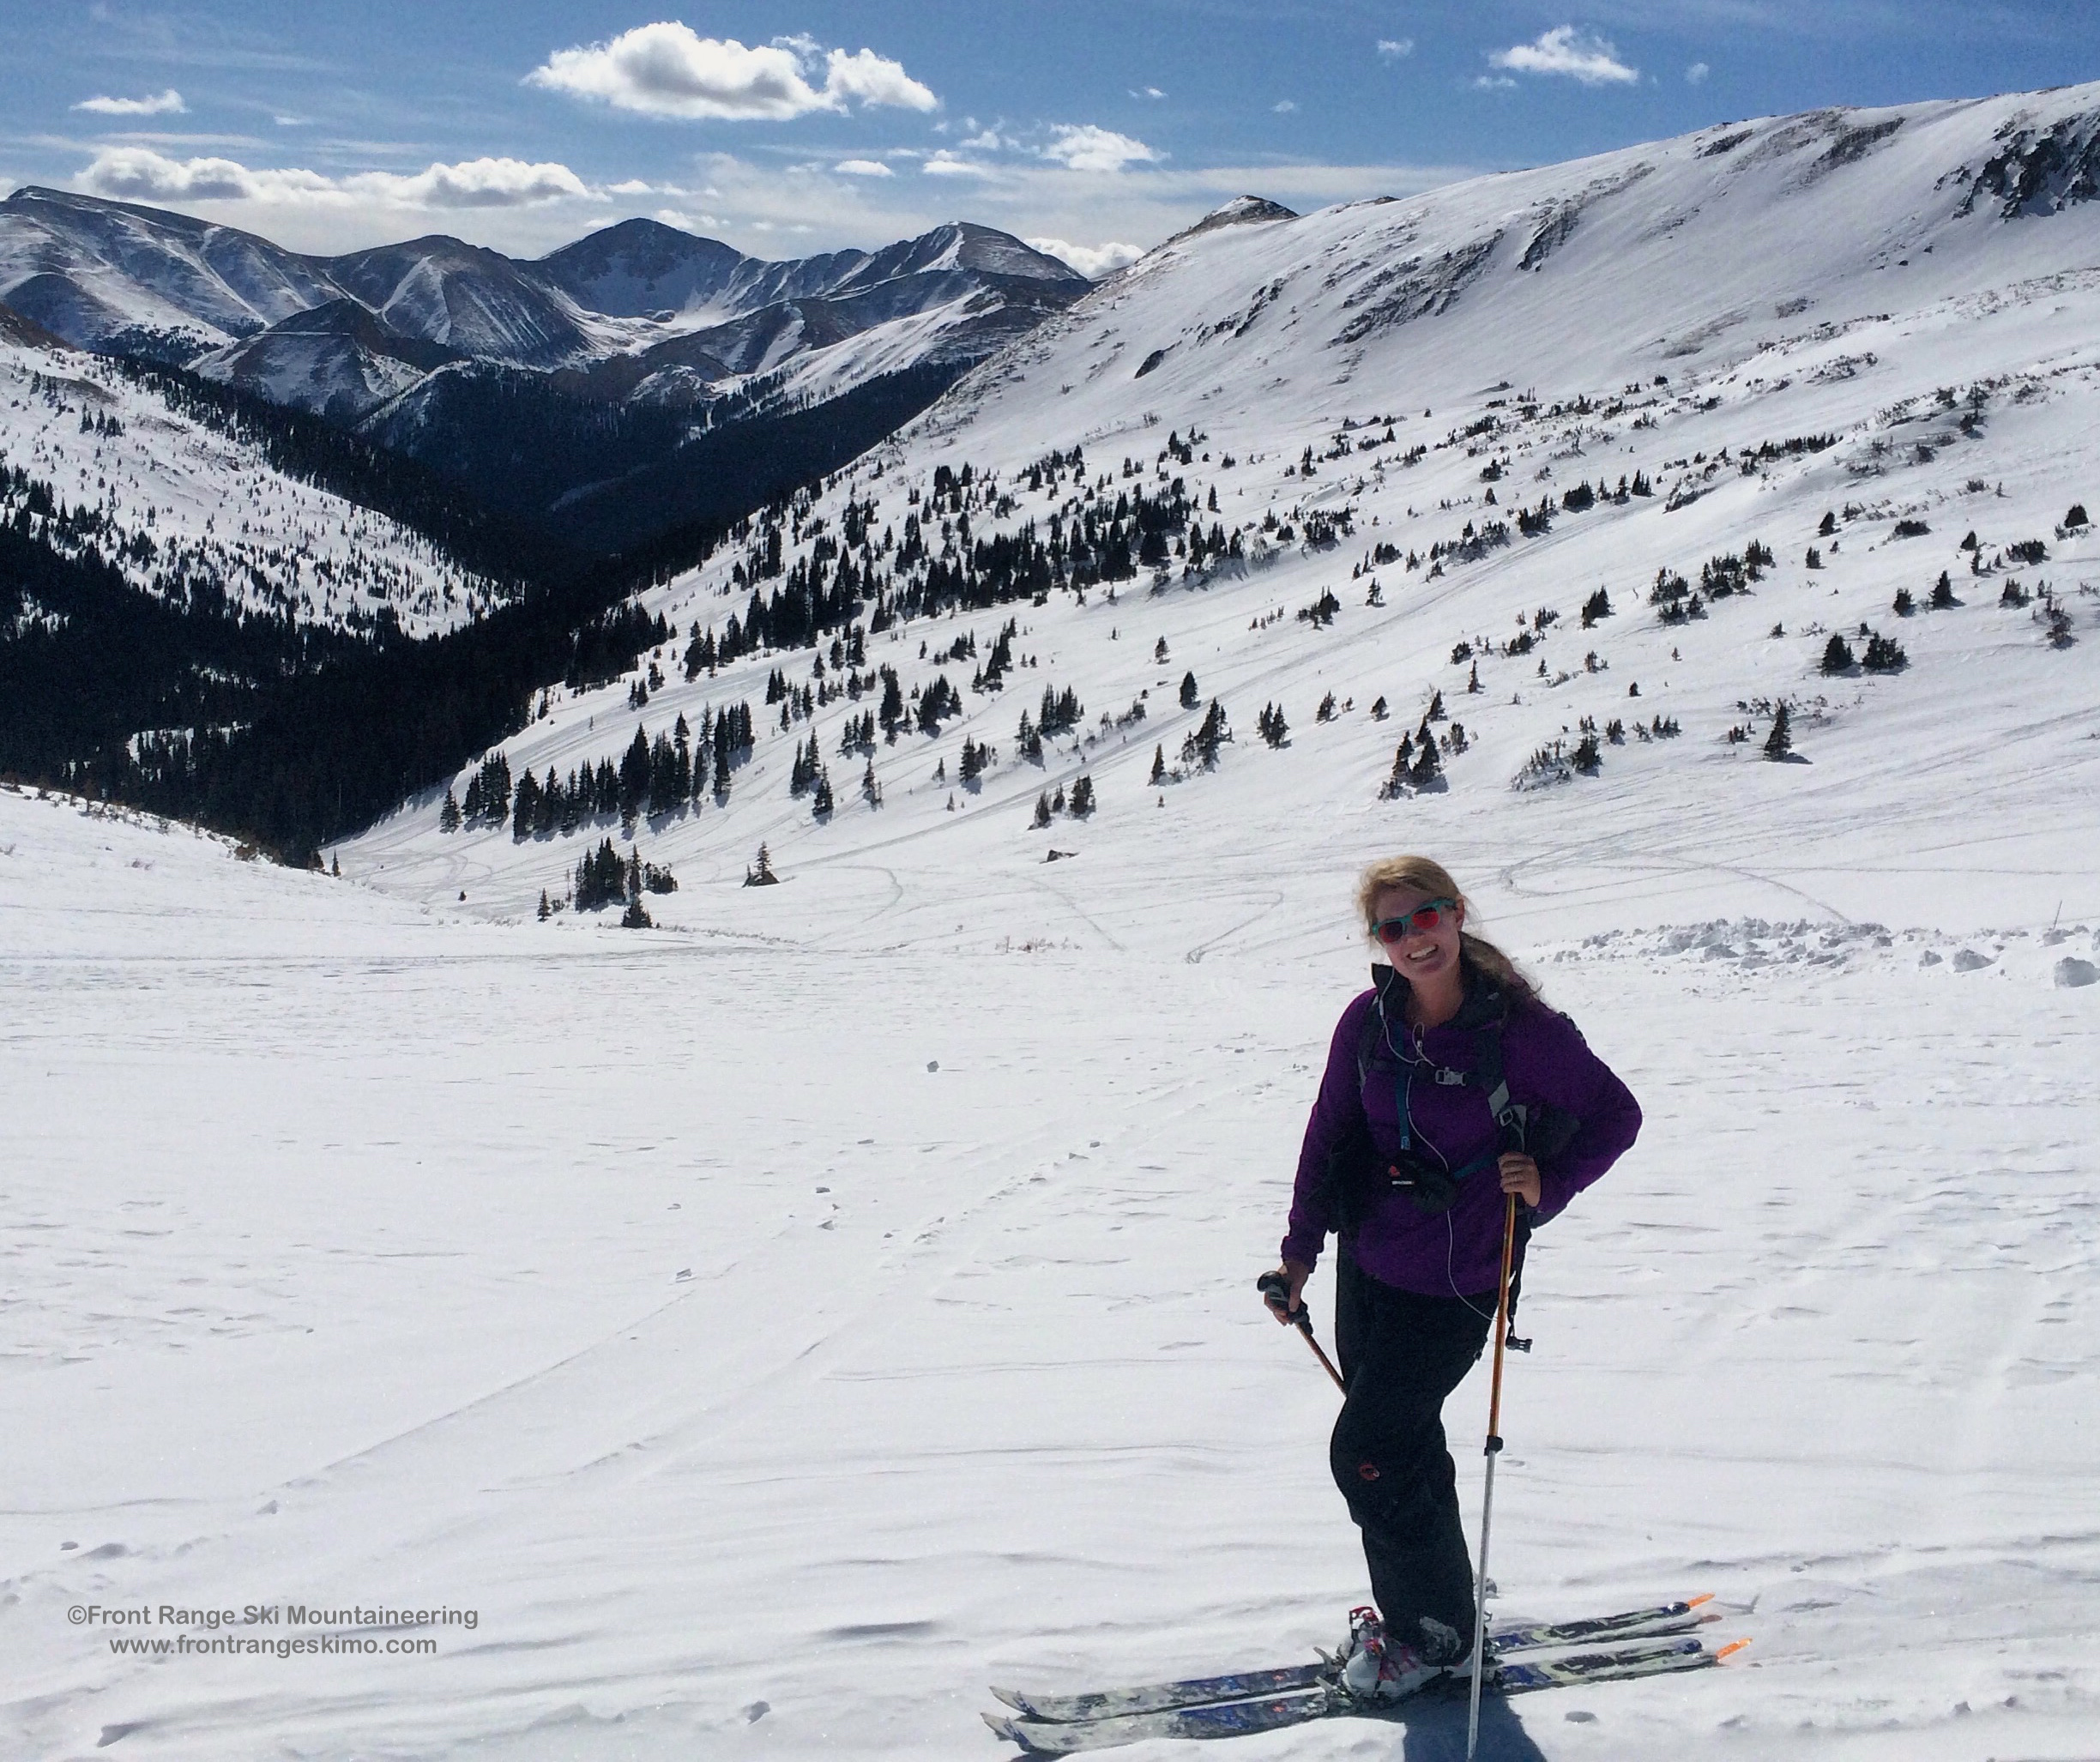 High up in the West Fork Bowl. Skier: Mary Writz